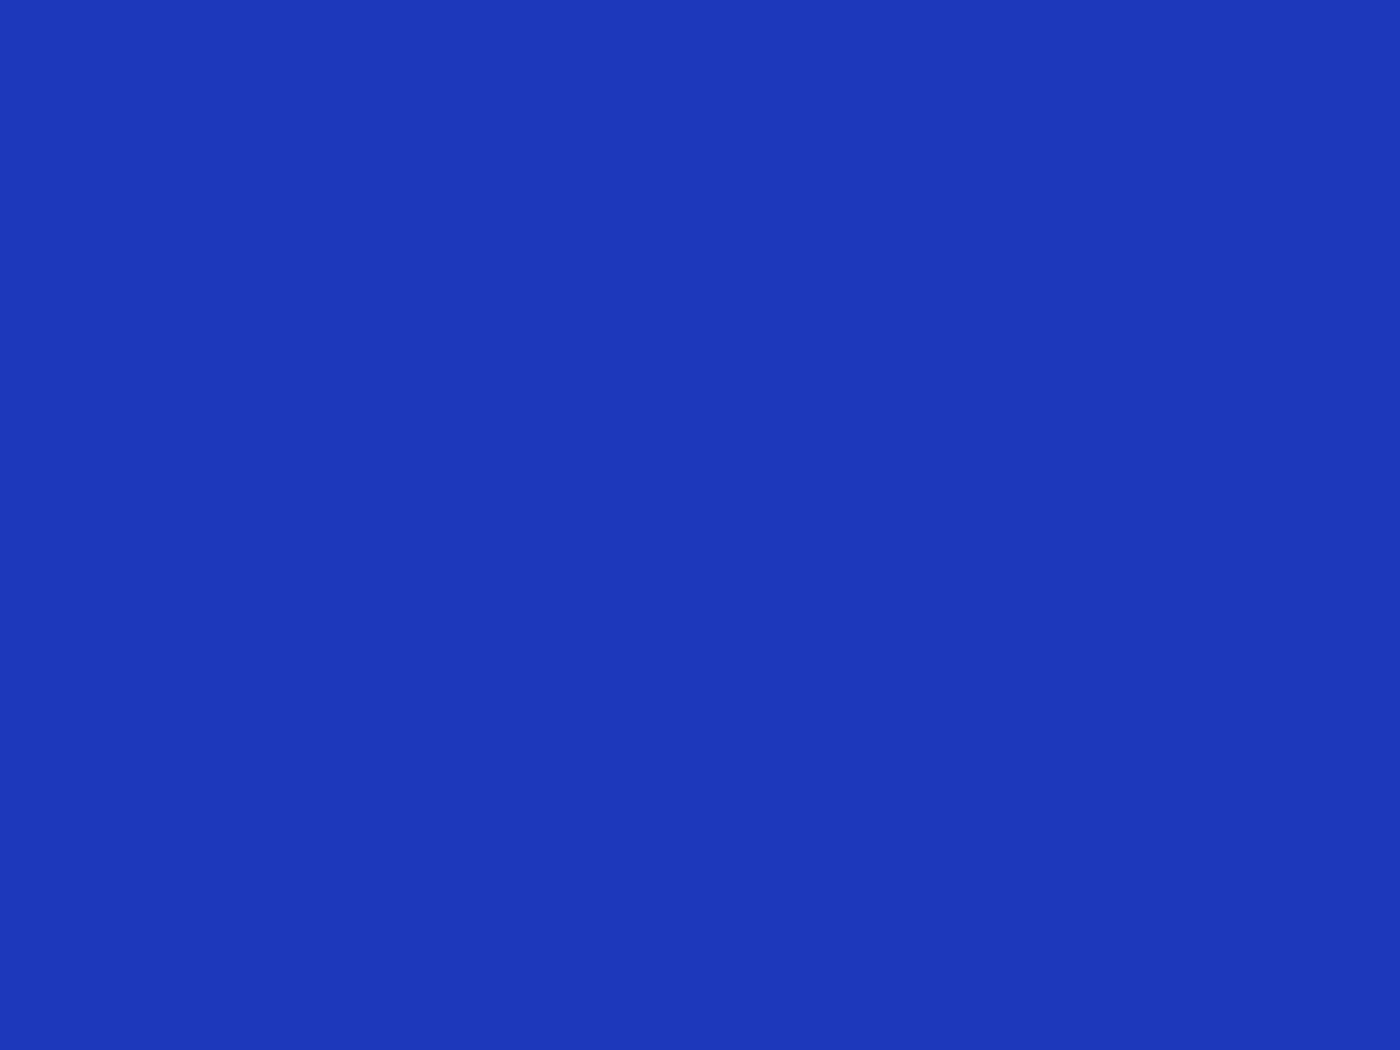 1400x1050 Persian Blue Solid Color Background